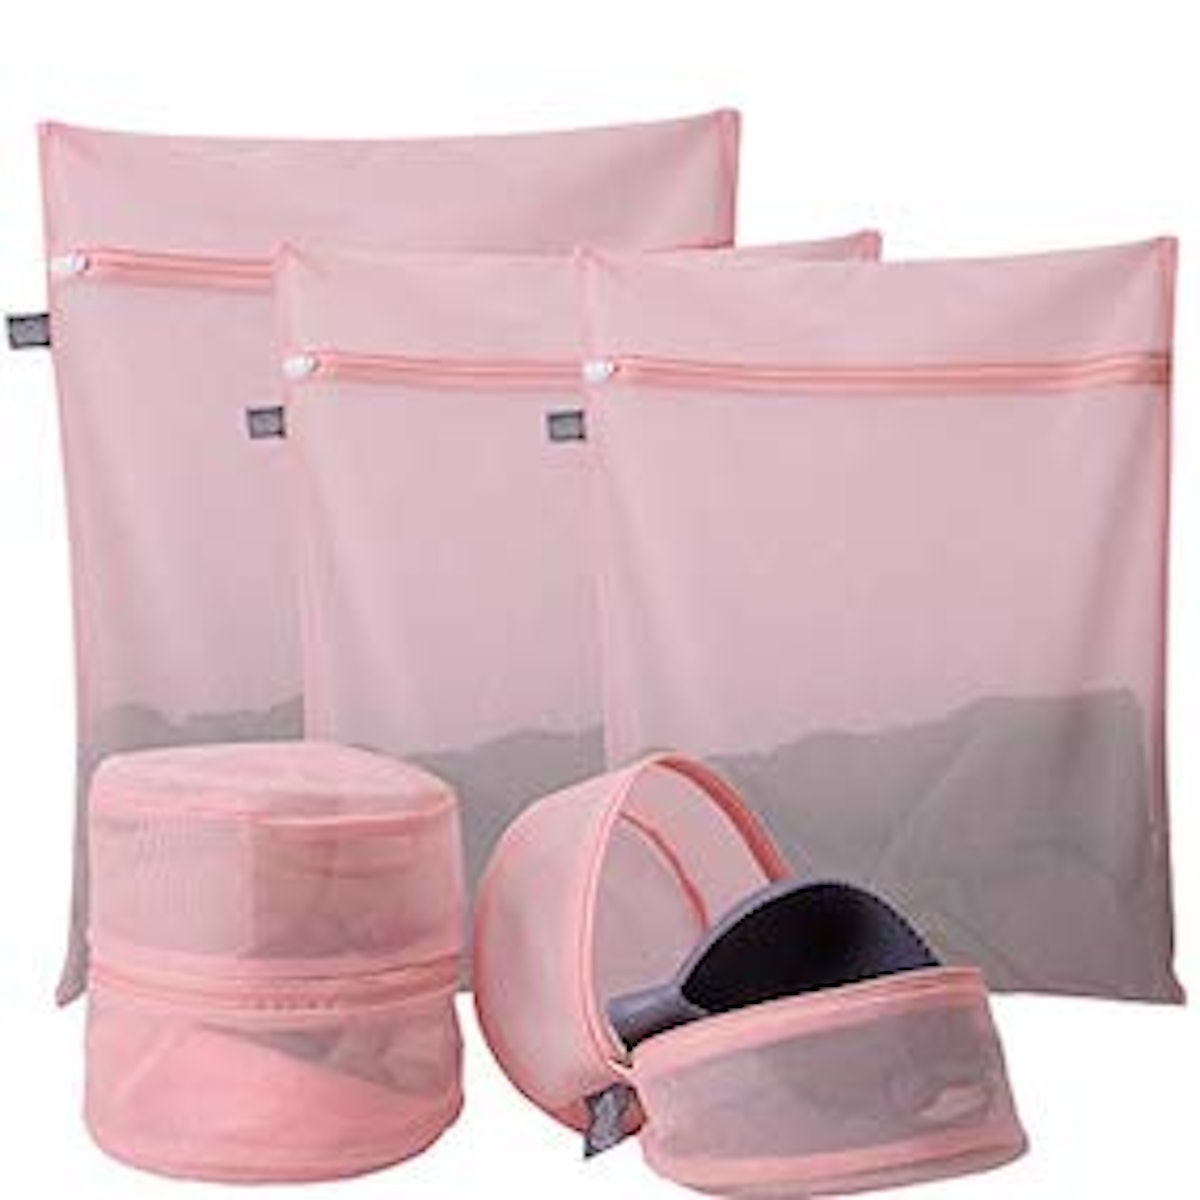 Kimmama Delicates Laundry Bags